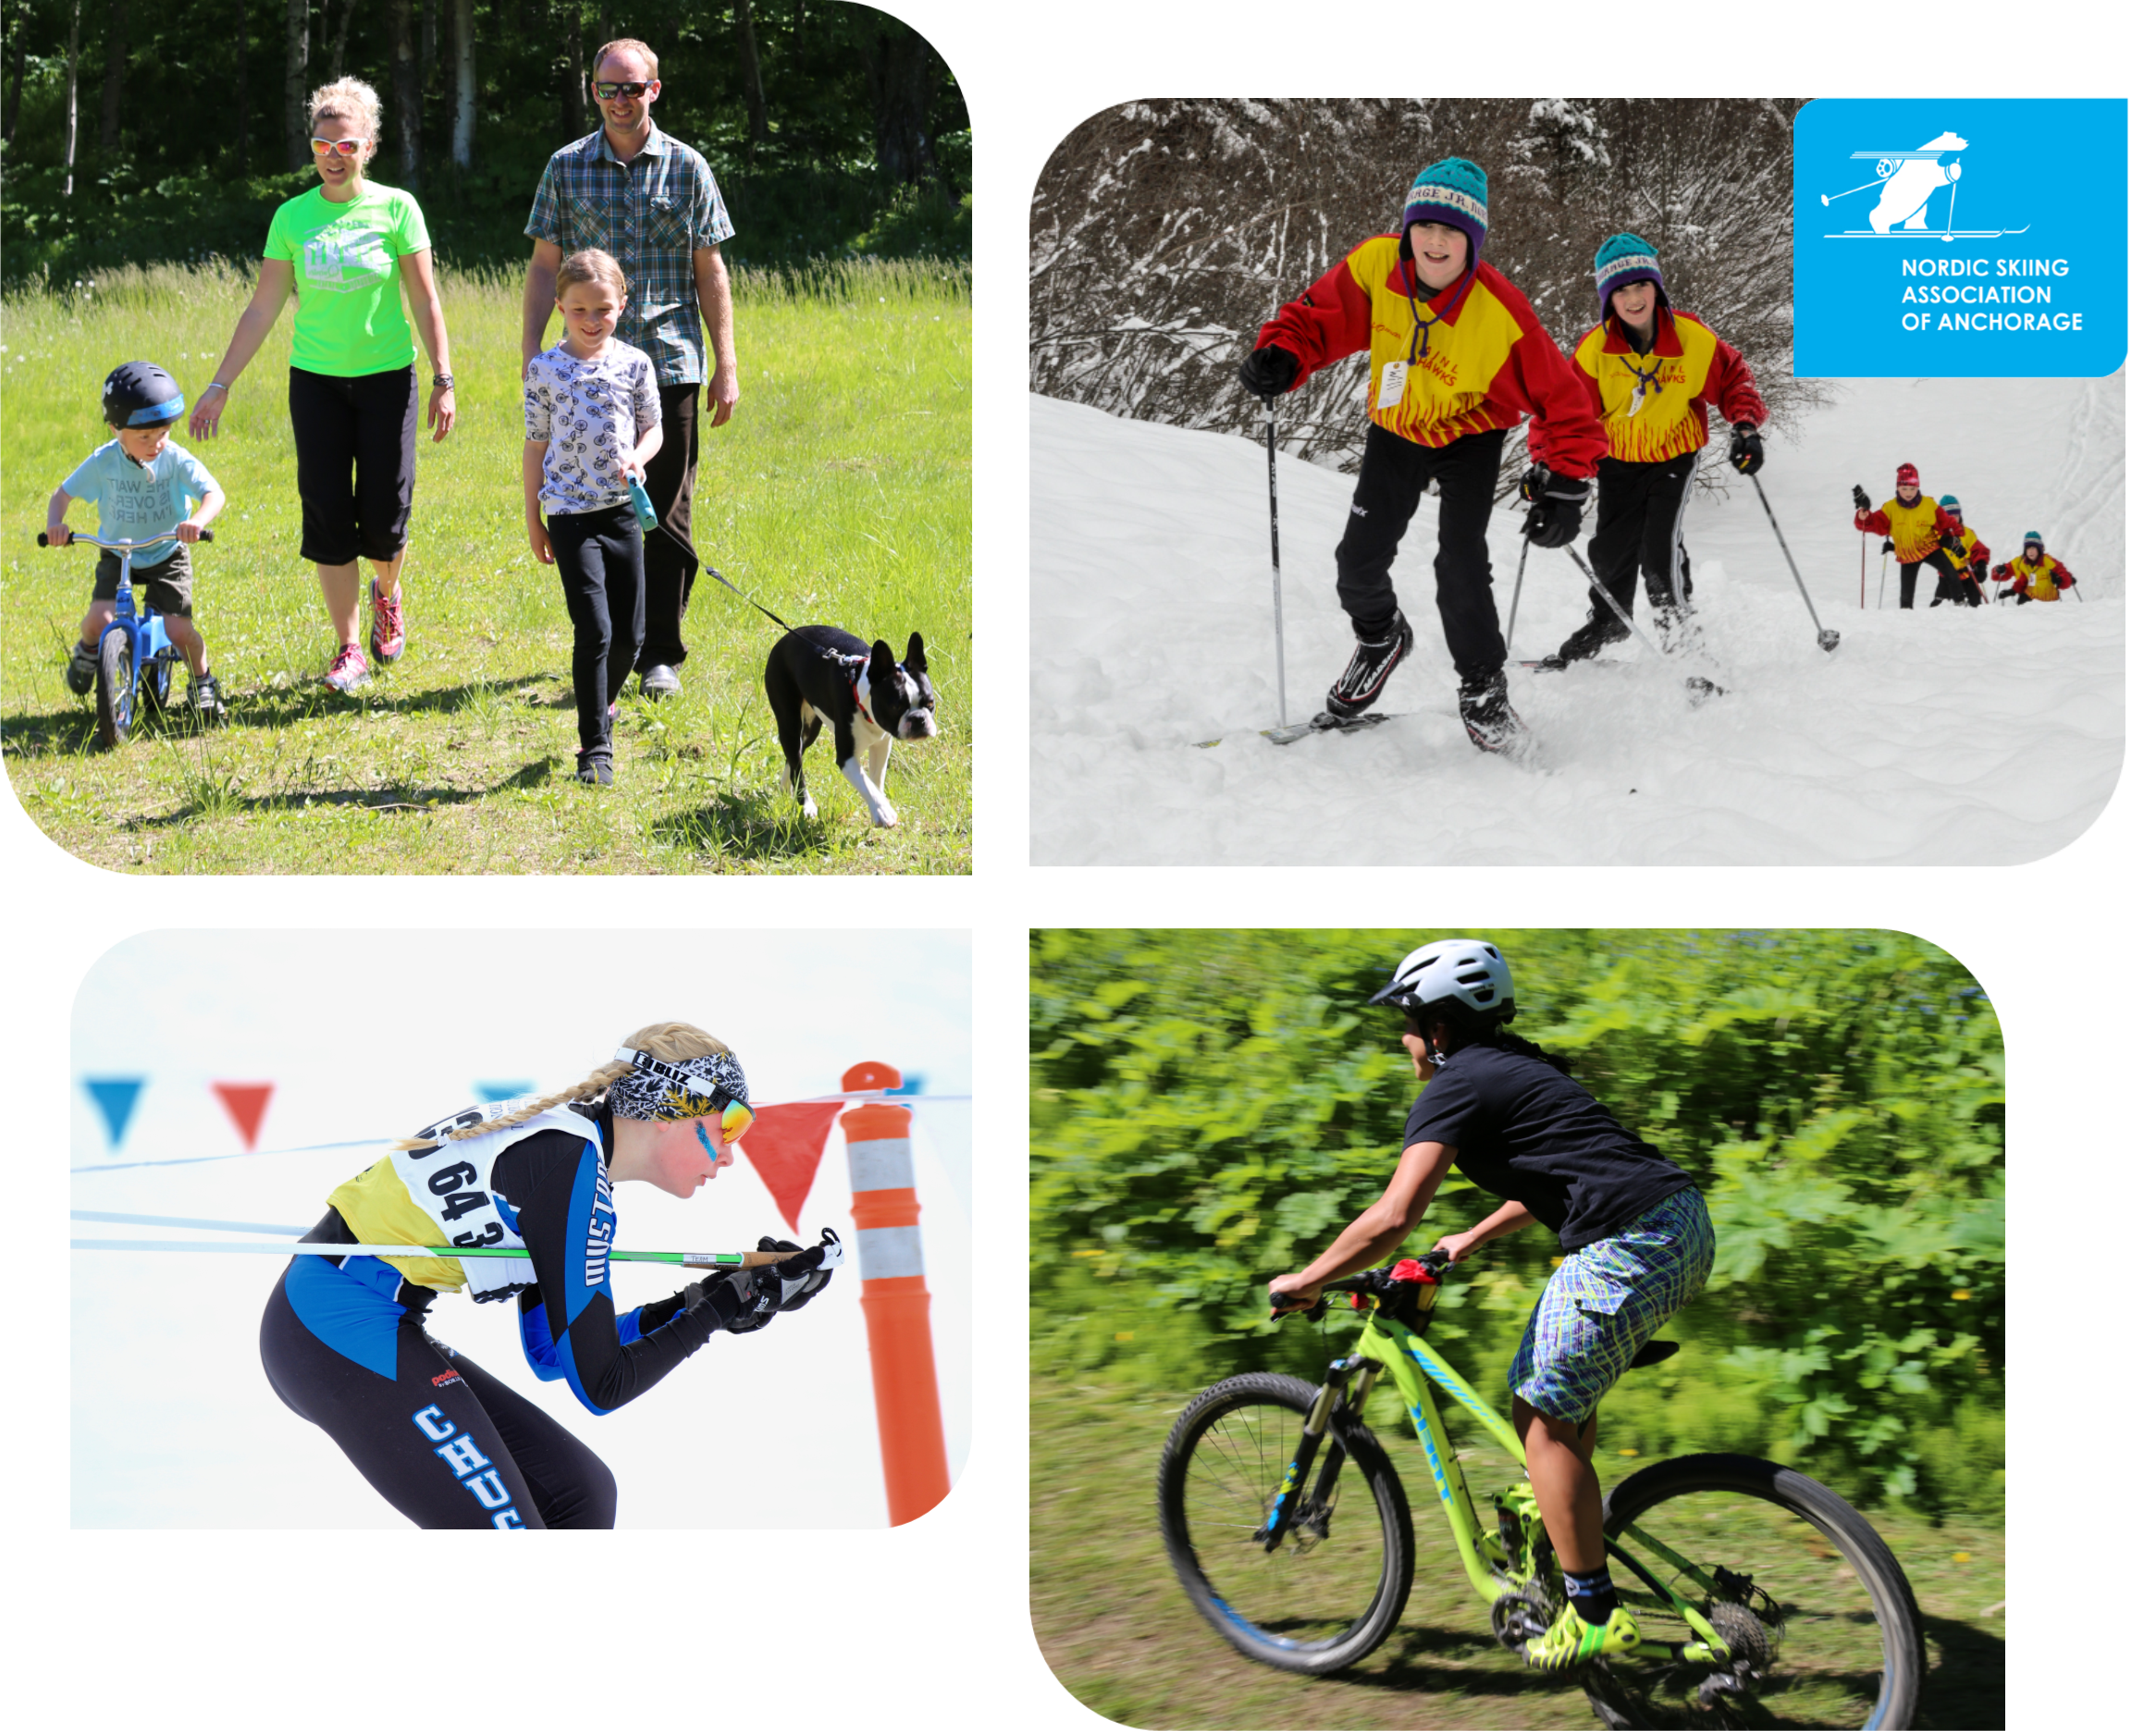 Events Nordic Skiing Association Of Anchorage